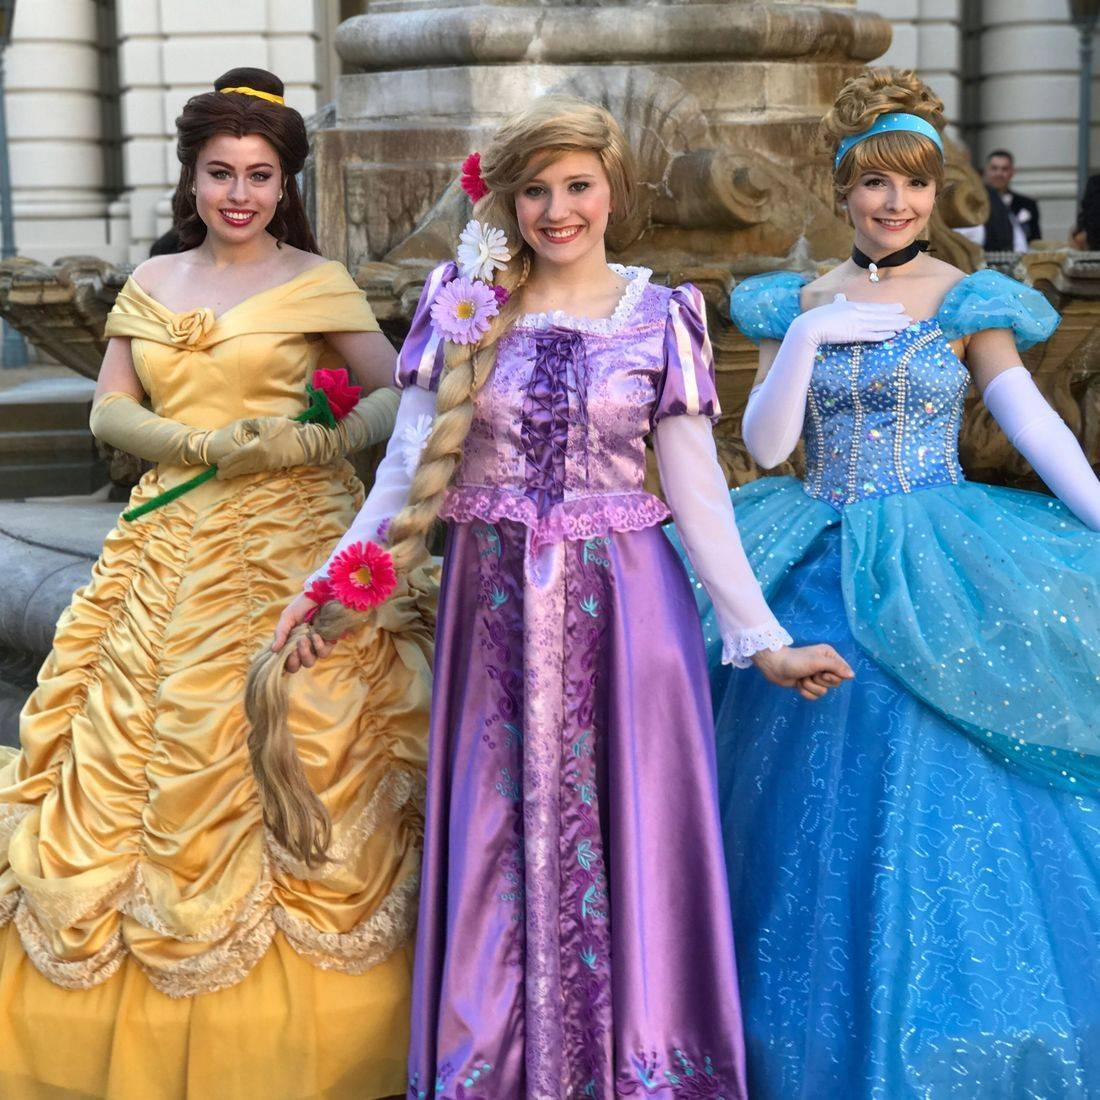 rapunzel,rapunzel party,belle, belle party,beauty and the beast party,party,riverside,character,princess party, kid's party entertainment